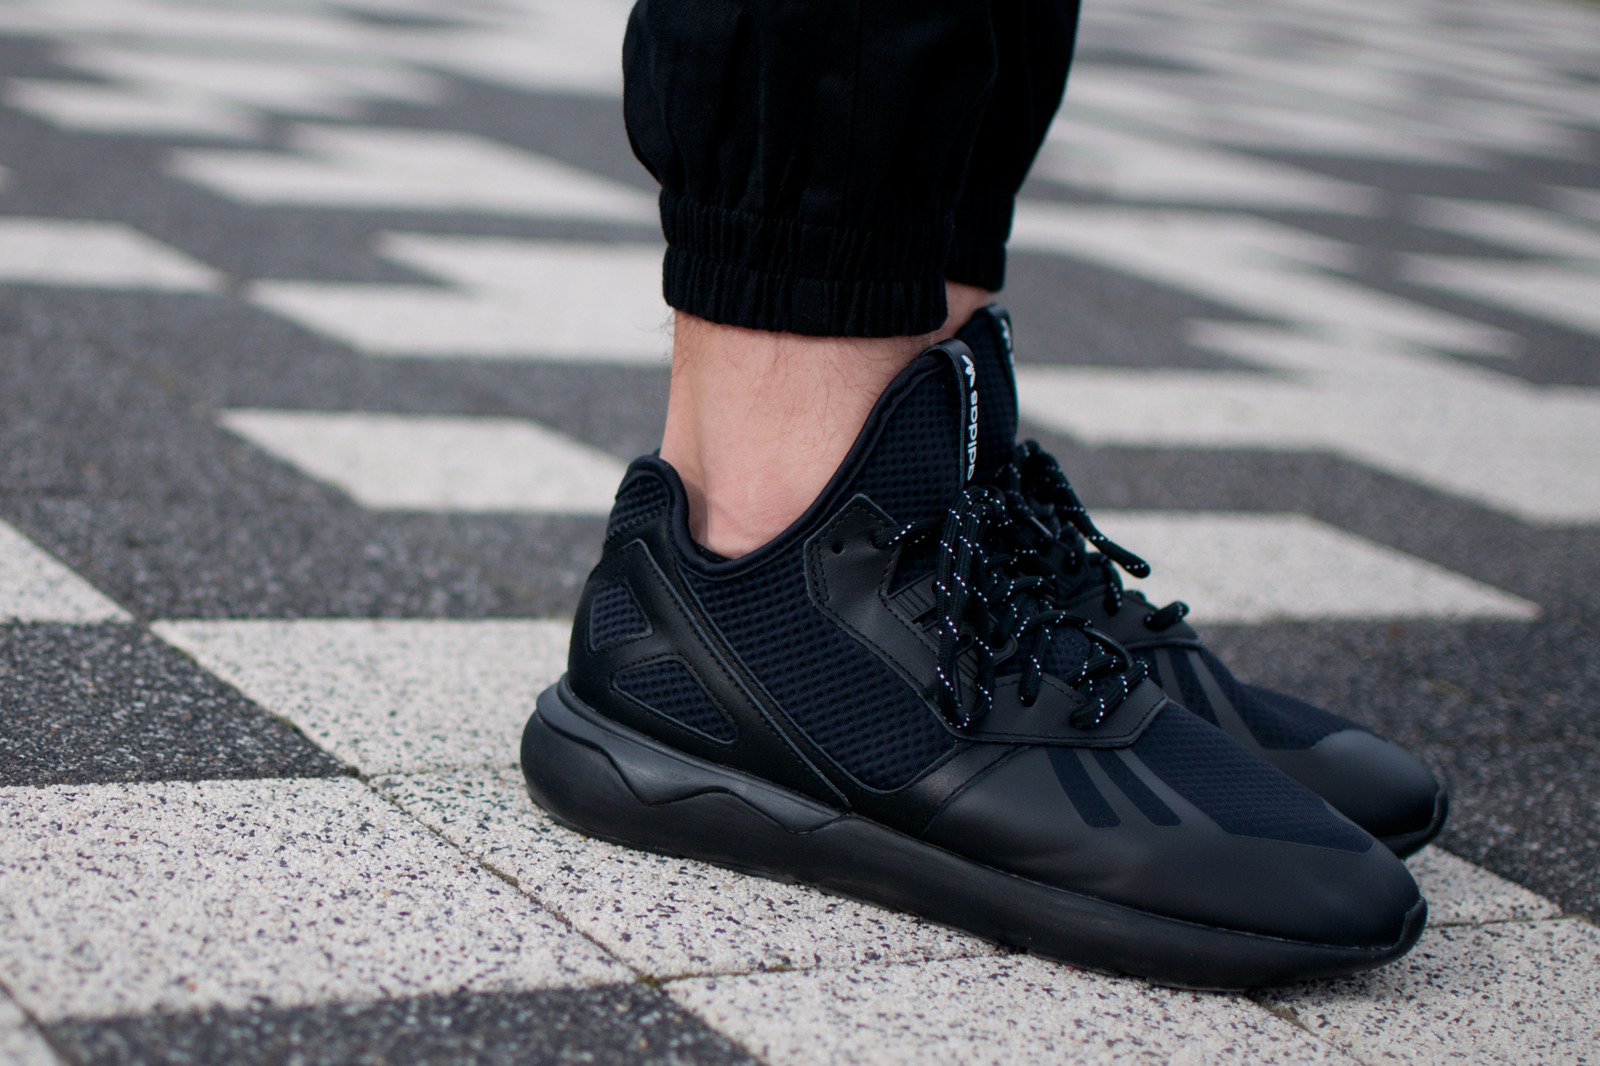 Adidas Tubular Doom Primeknit (Black): ON FEET